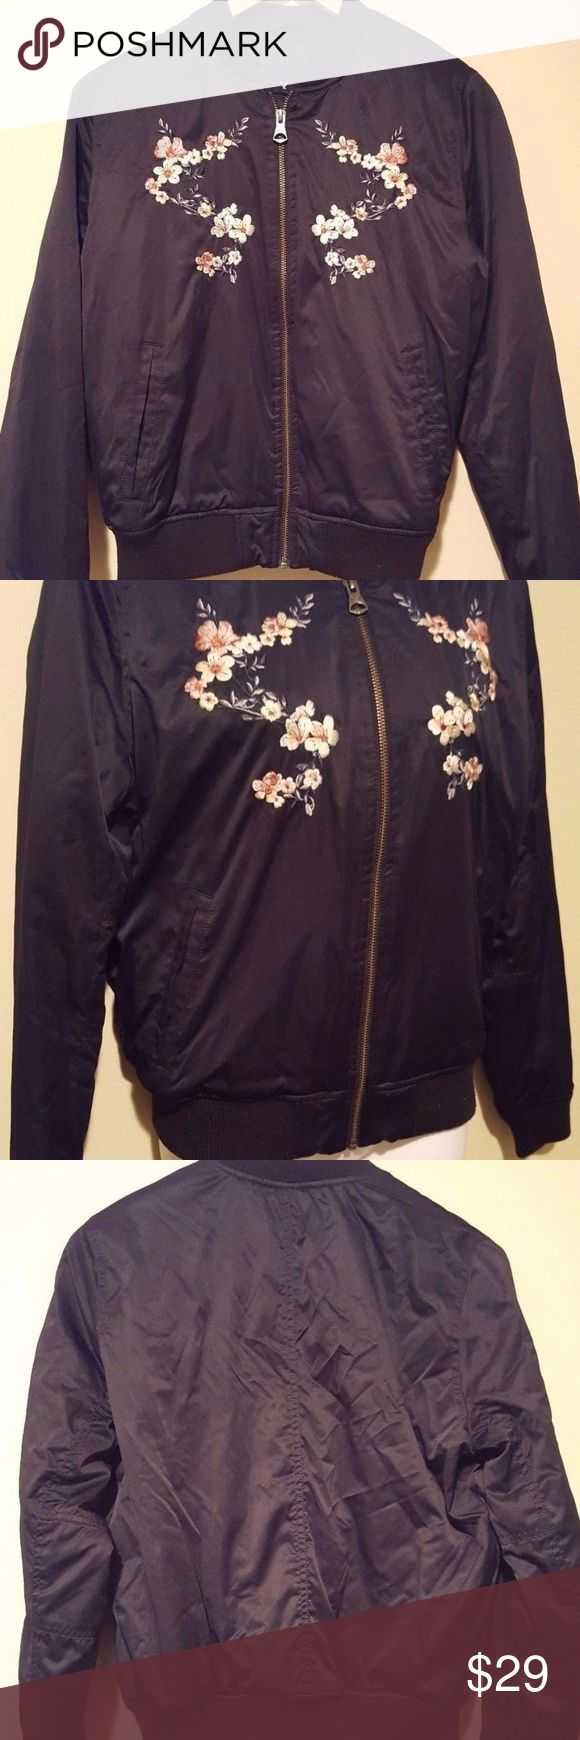 American Eagle Embroidered Bomber Jacket Small Bla Brand: American Eagle Outfitters Size: small Flaws:   No rips, stains or holes.  Color:  black  Armpit to armpit measures –   21 inches  Length of jacket -  24 inches American Eagle Outfitters Jackets & Coats